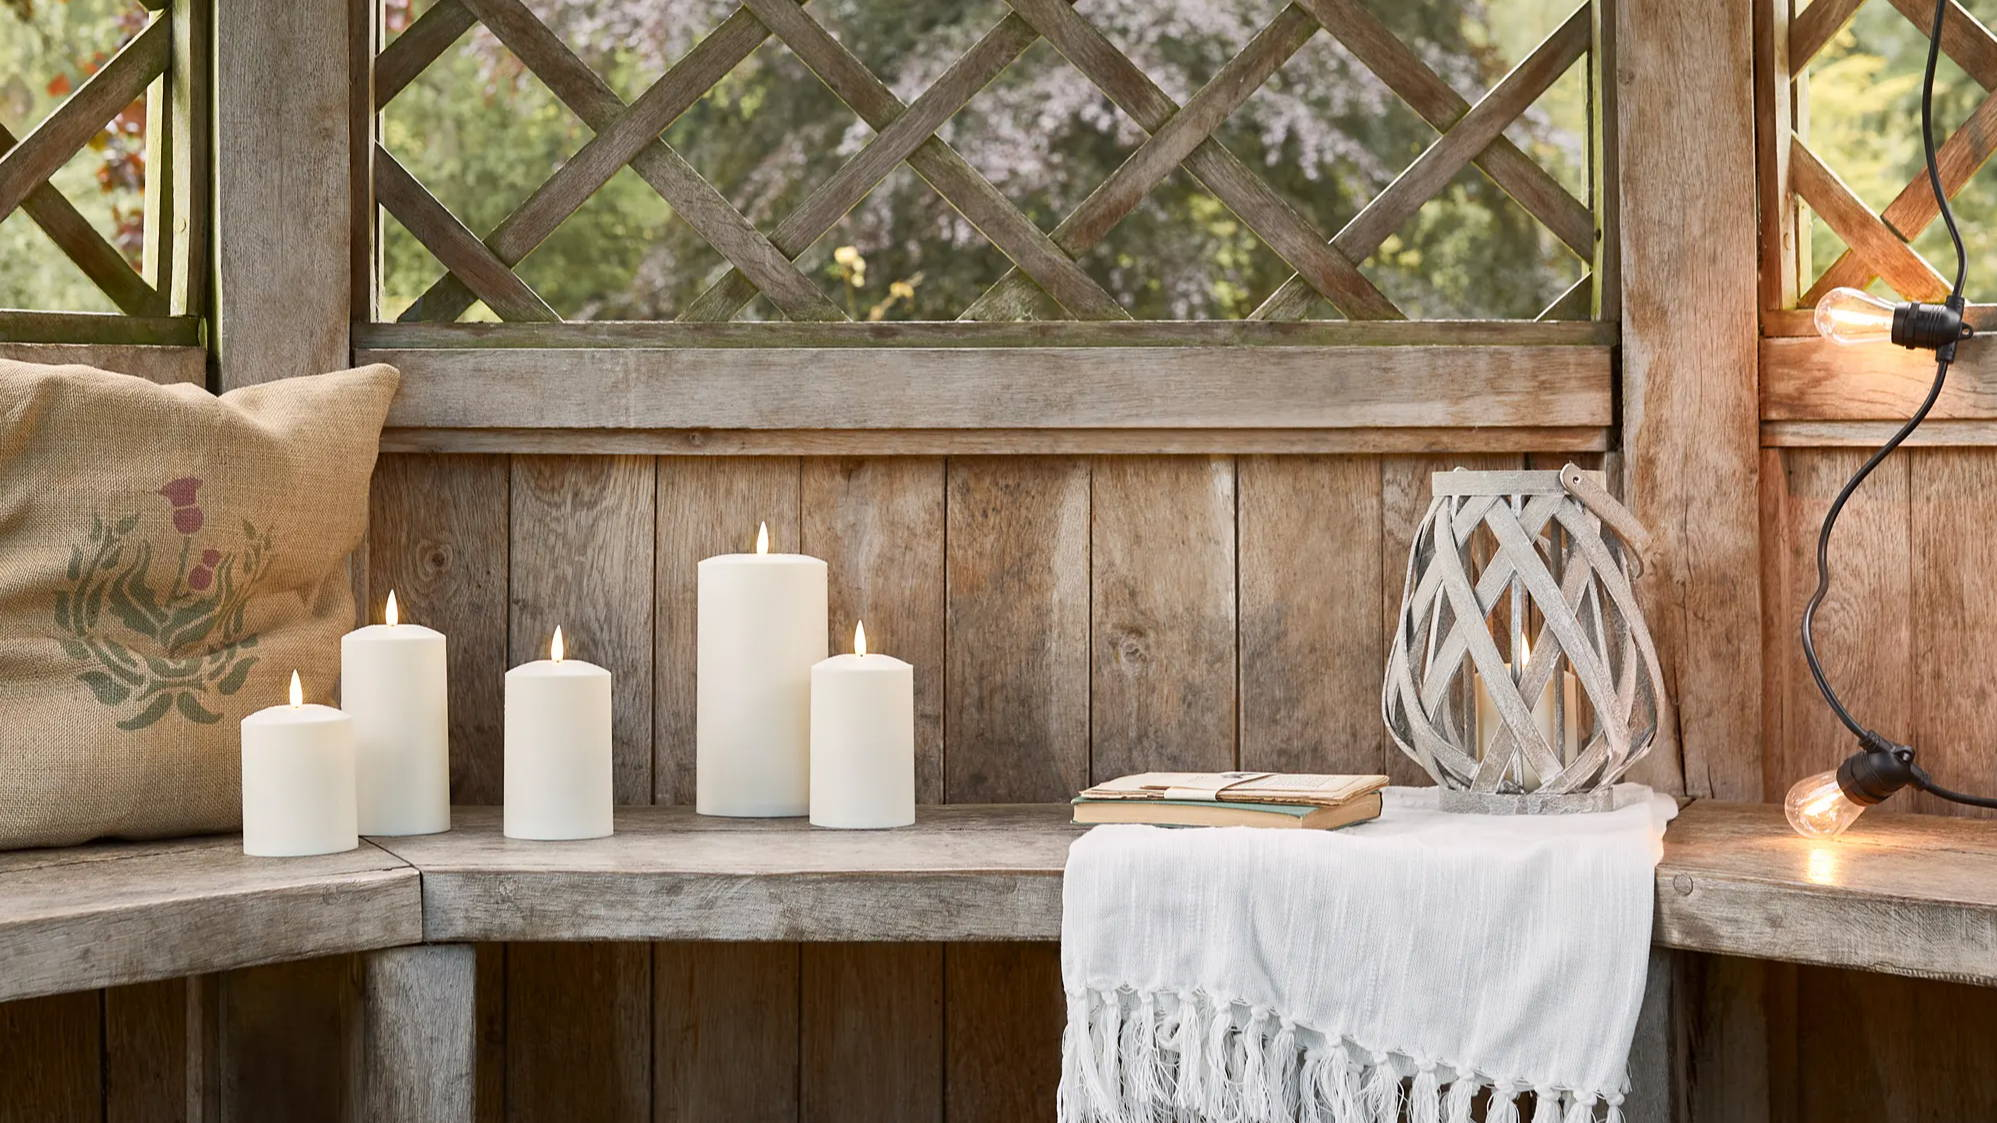 Summerhouse with TruGlow candles, woven garden lantern and festoons displayed on bench